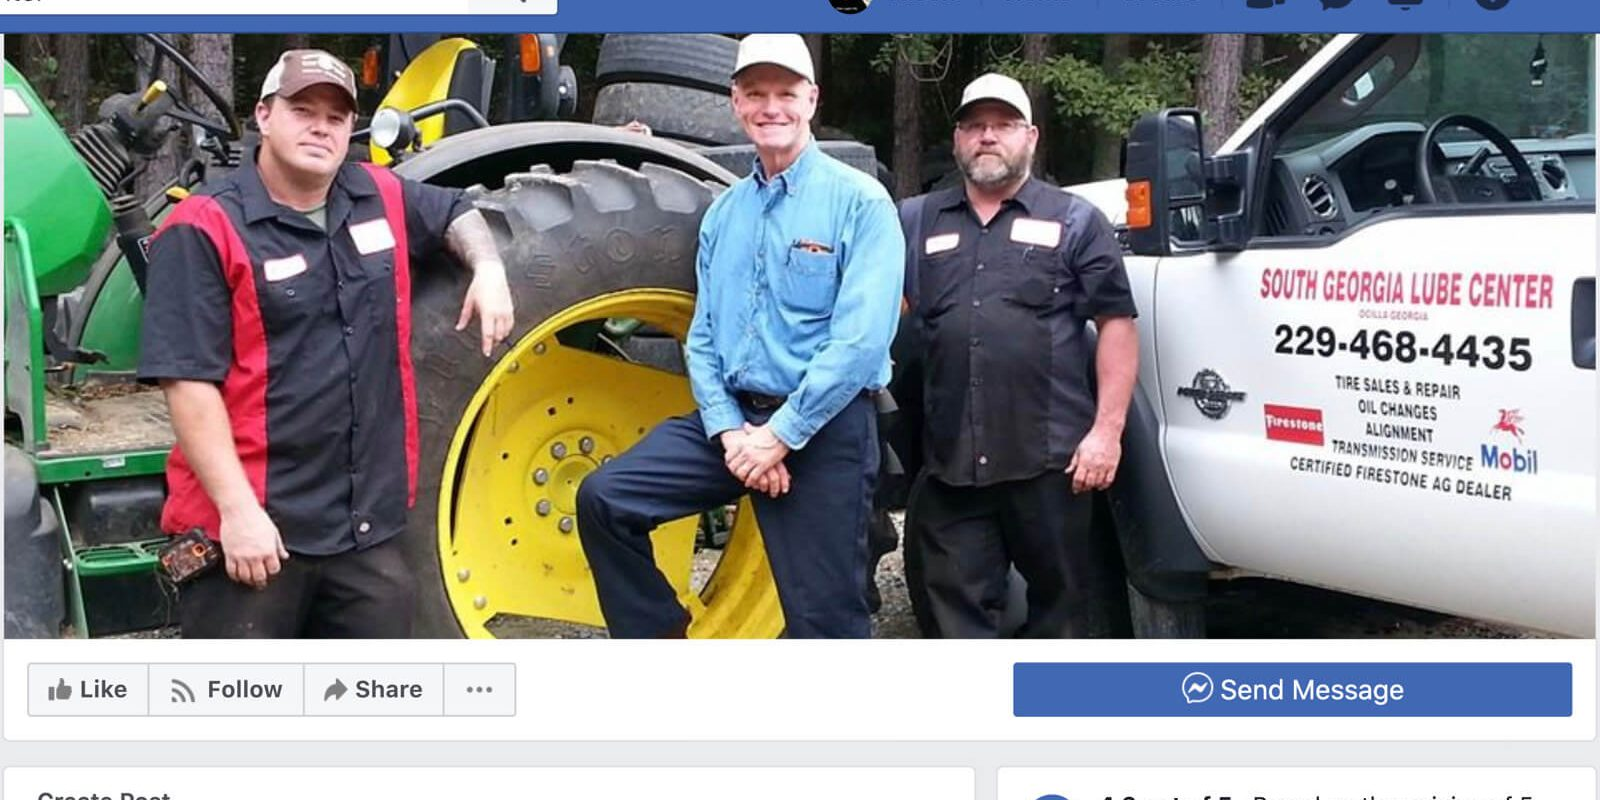 Screenshot of the Facebook Page for South Georgia Lube Center in Fitzgerald and Ocilla, Georgia.